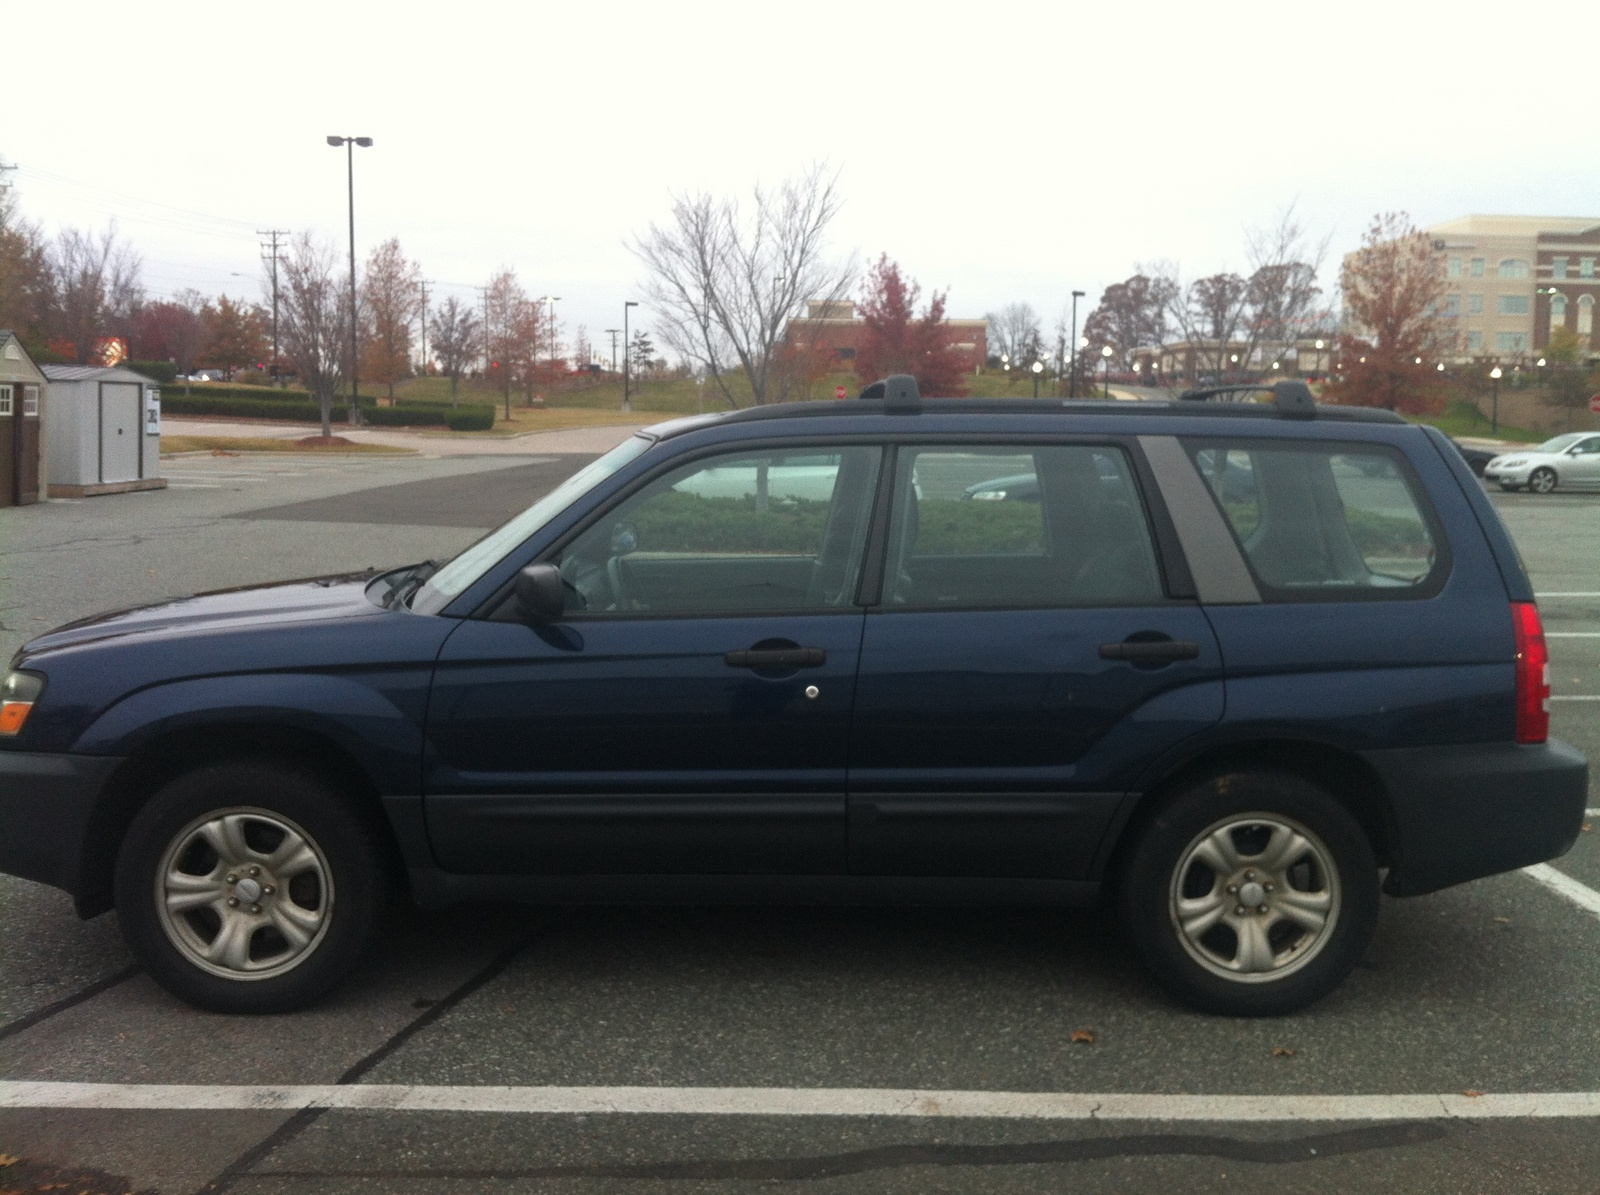 Forester Xt 2004 >> 2005 Subaru Forester - Pictures - CarGurus